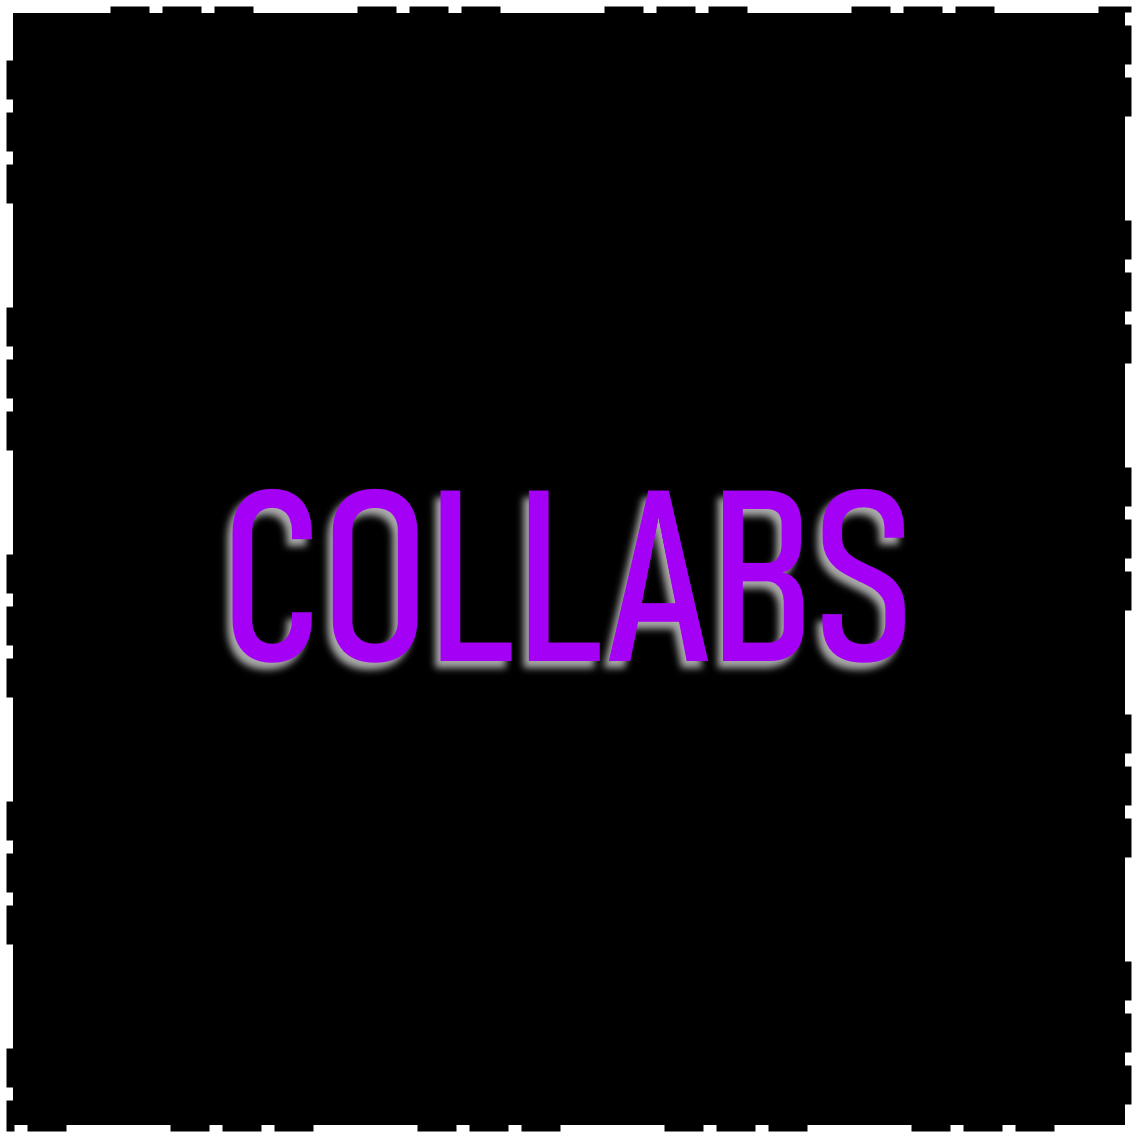 Collabs